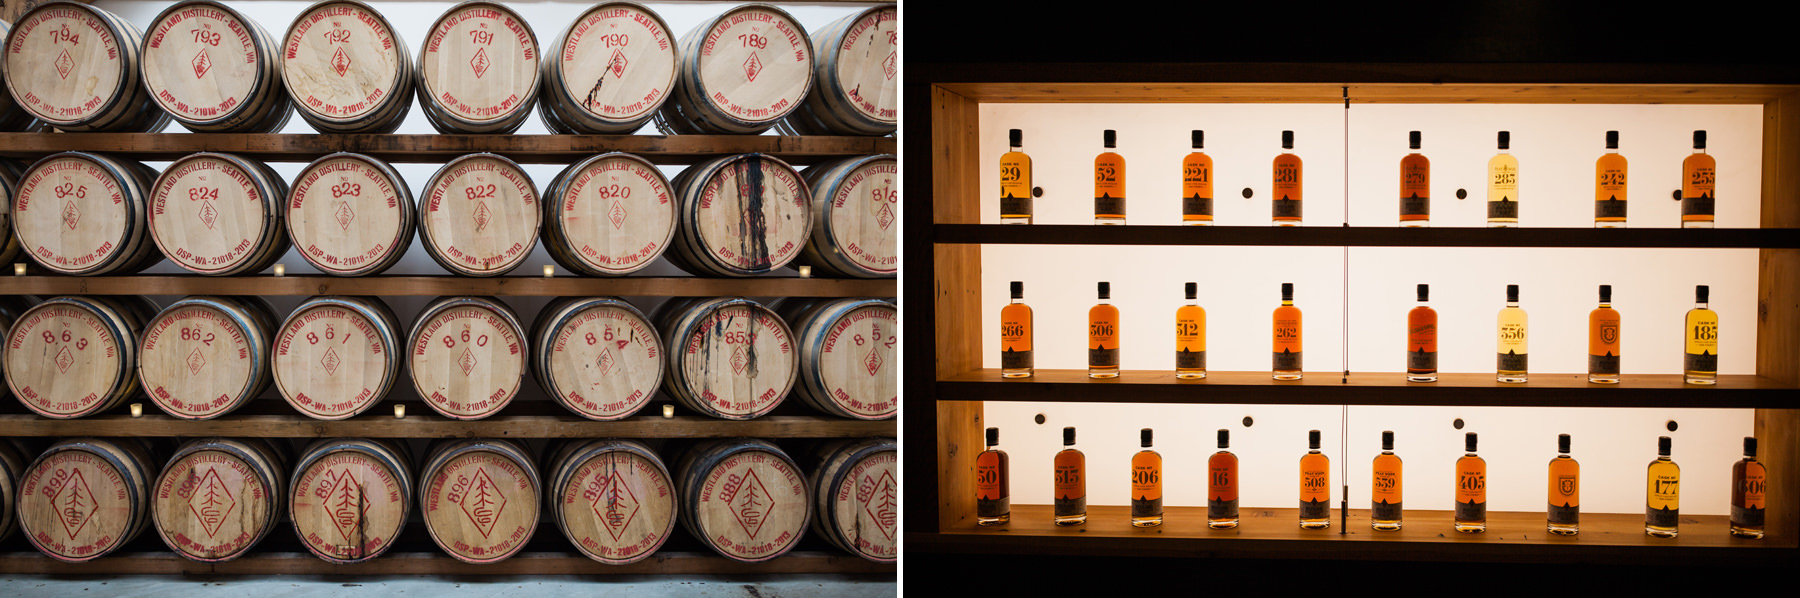 064-whiskey-and-barrels-at-westland-distillery-in-seattle-washington.jpg